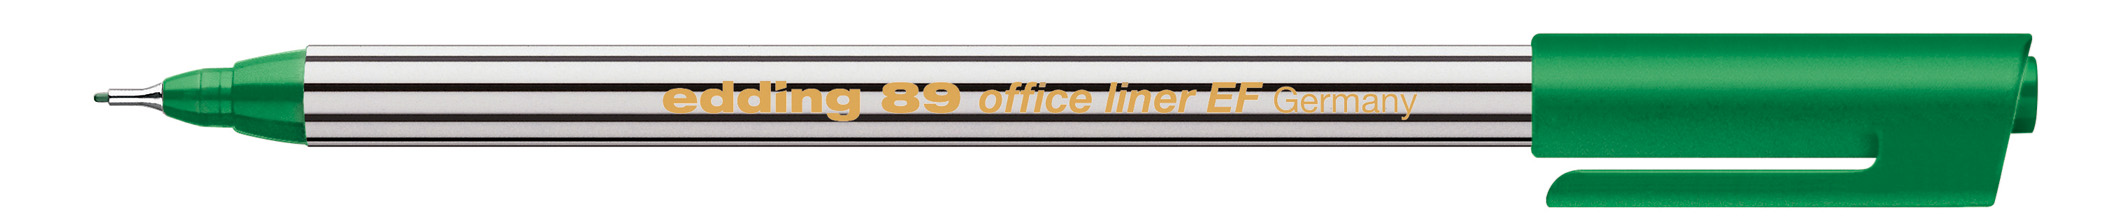 89 office liner EF - 0,3 mm, grün